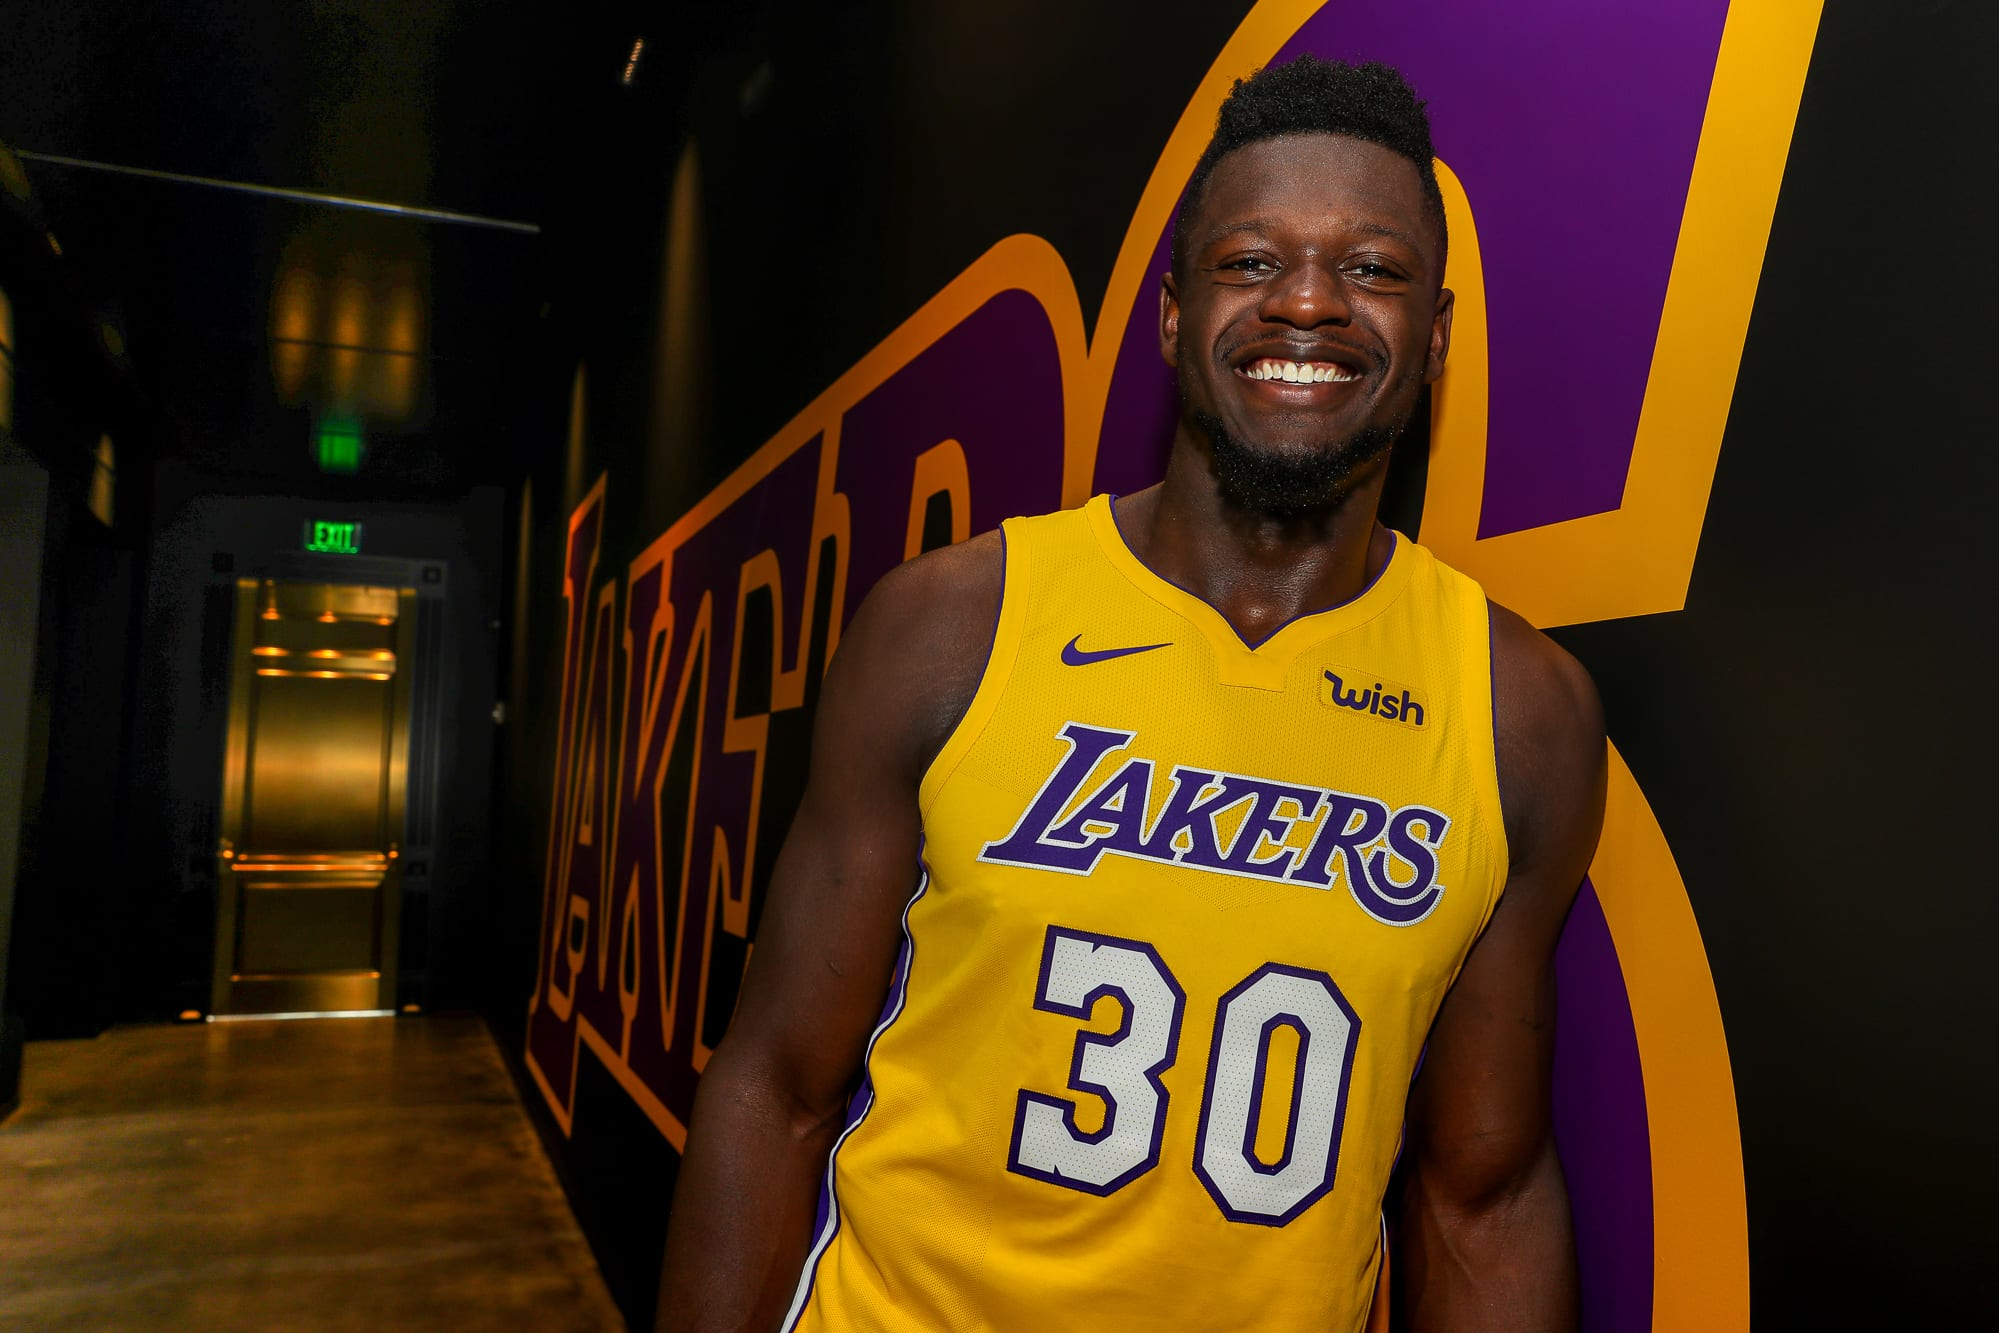 f209d4830a1 Lakers  Wish  Patch Has The Franchise Looking Good In More Ways Than ...